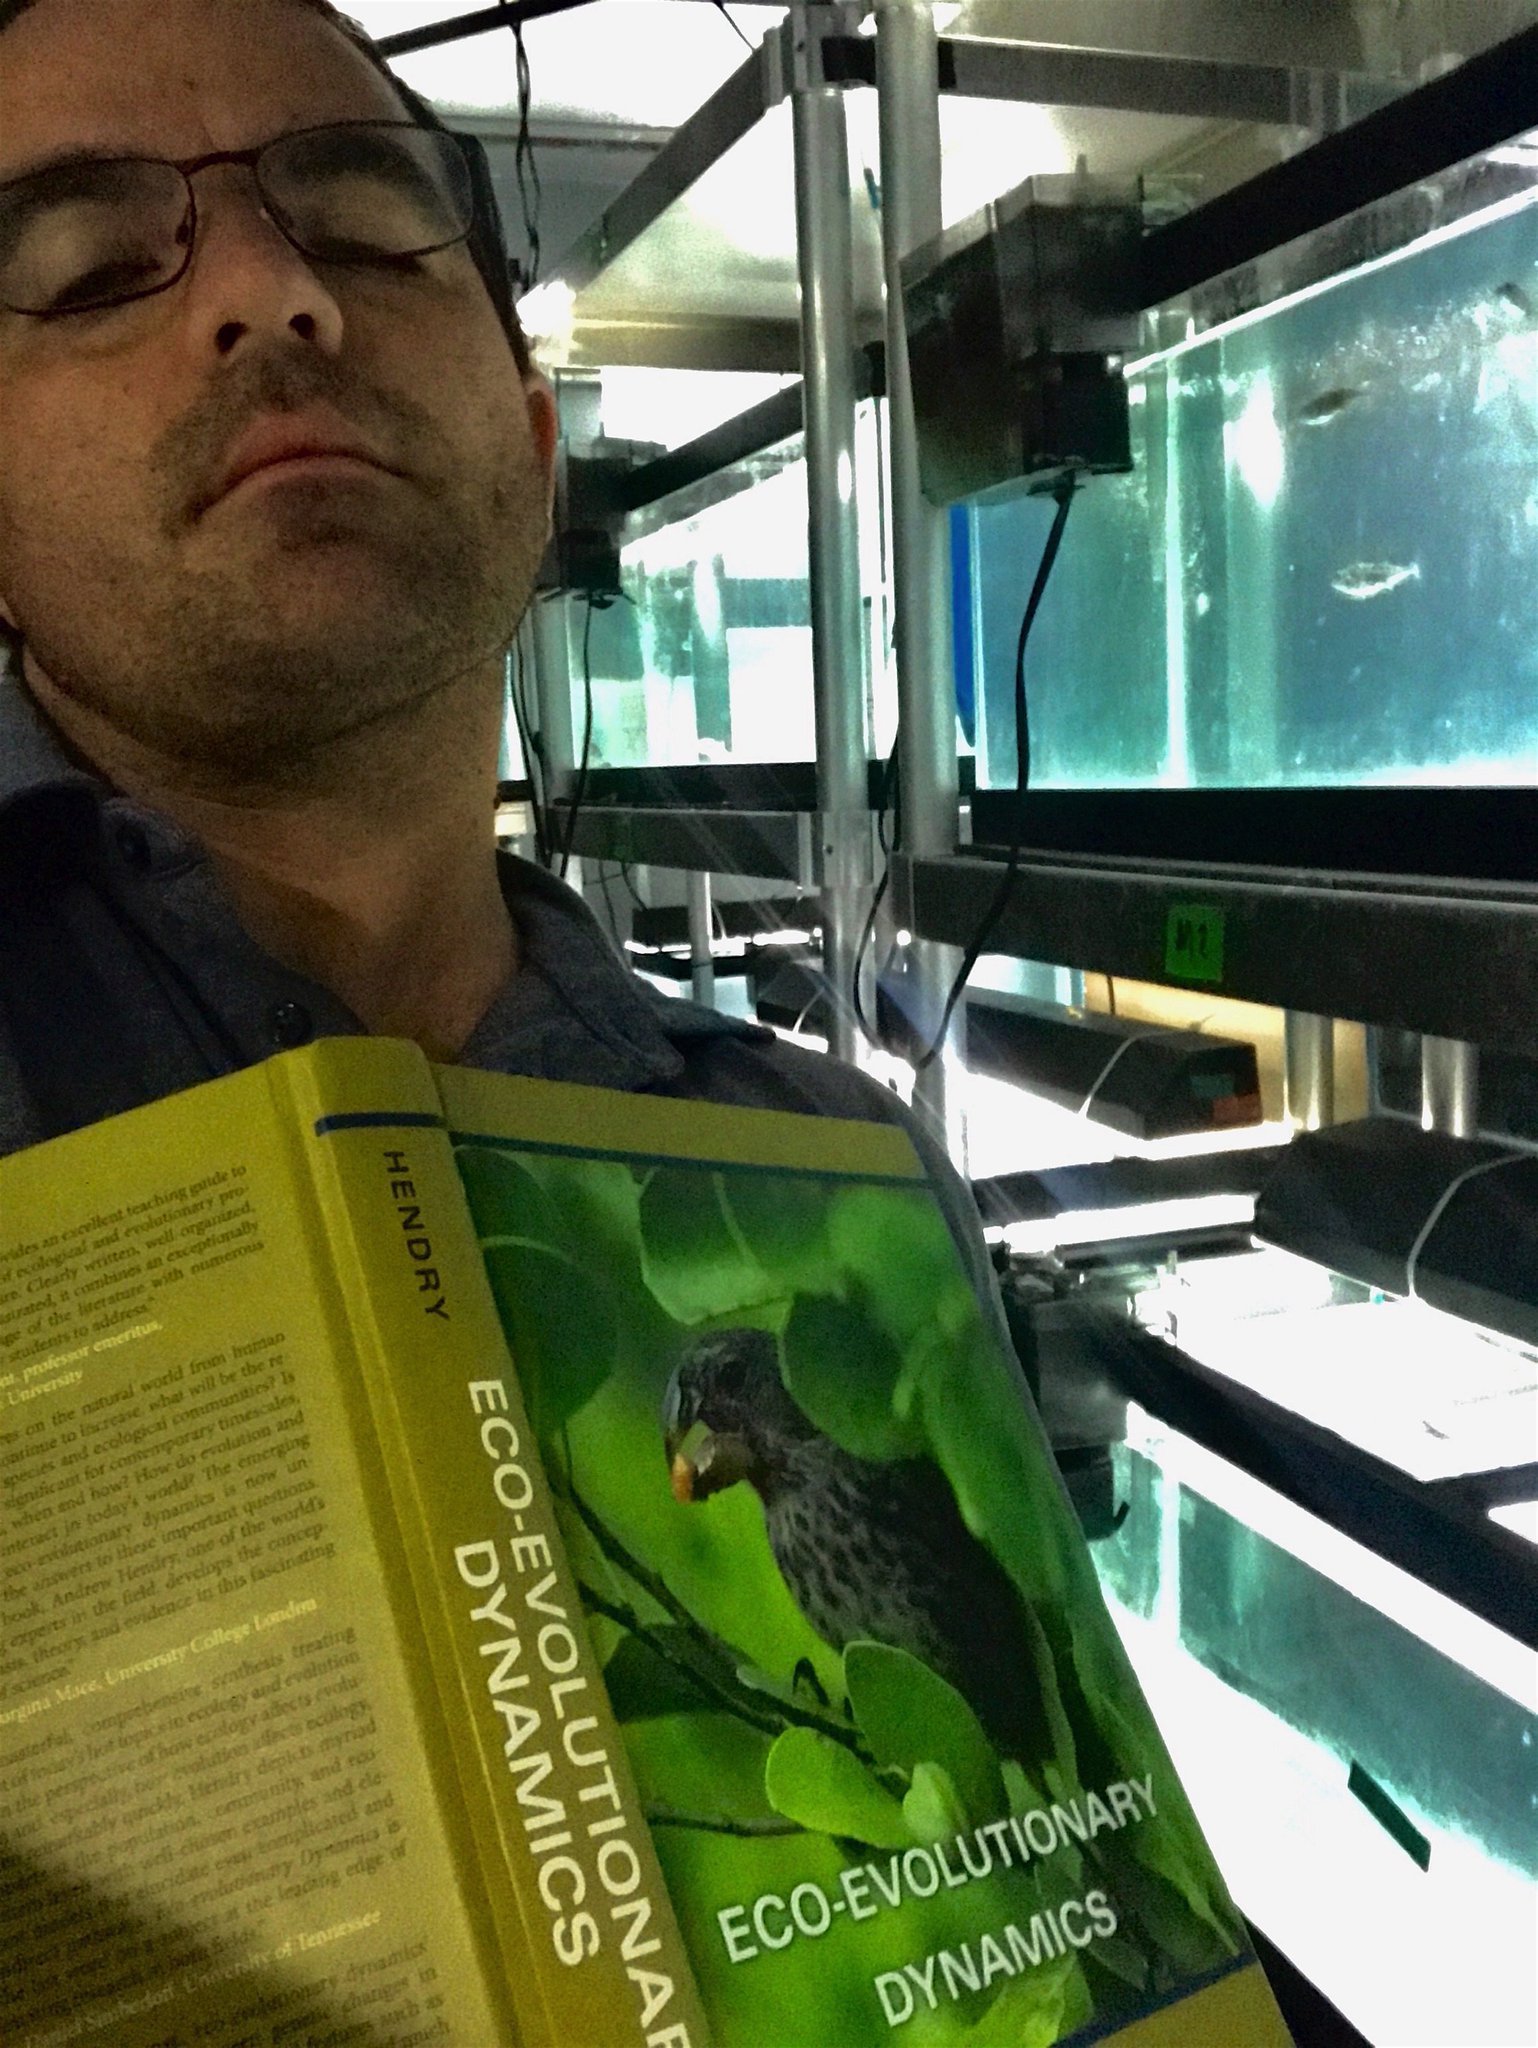 #PeopleWhoFellAsleepReadingMyBook Chris Anderson and his stickleback! https://t.co/qvoWThewv8